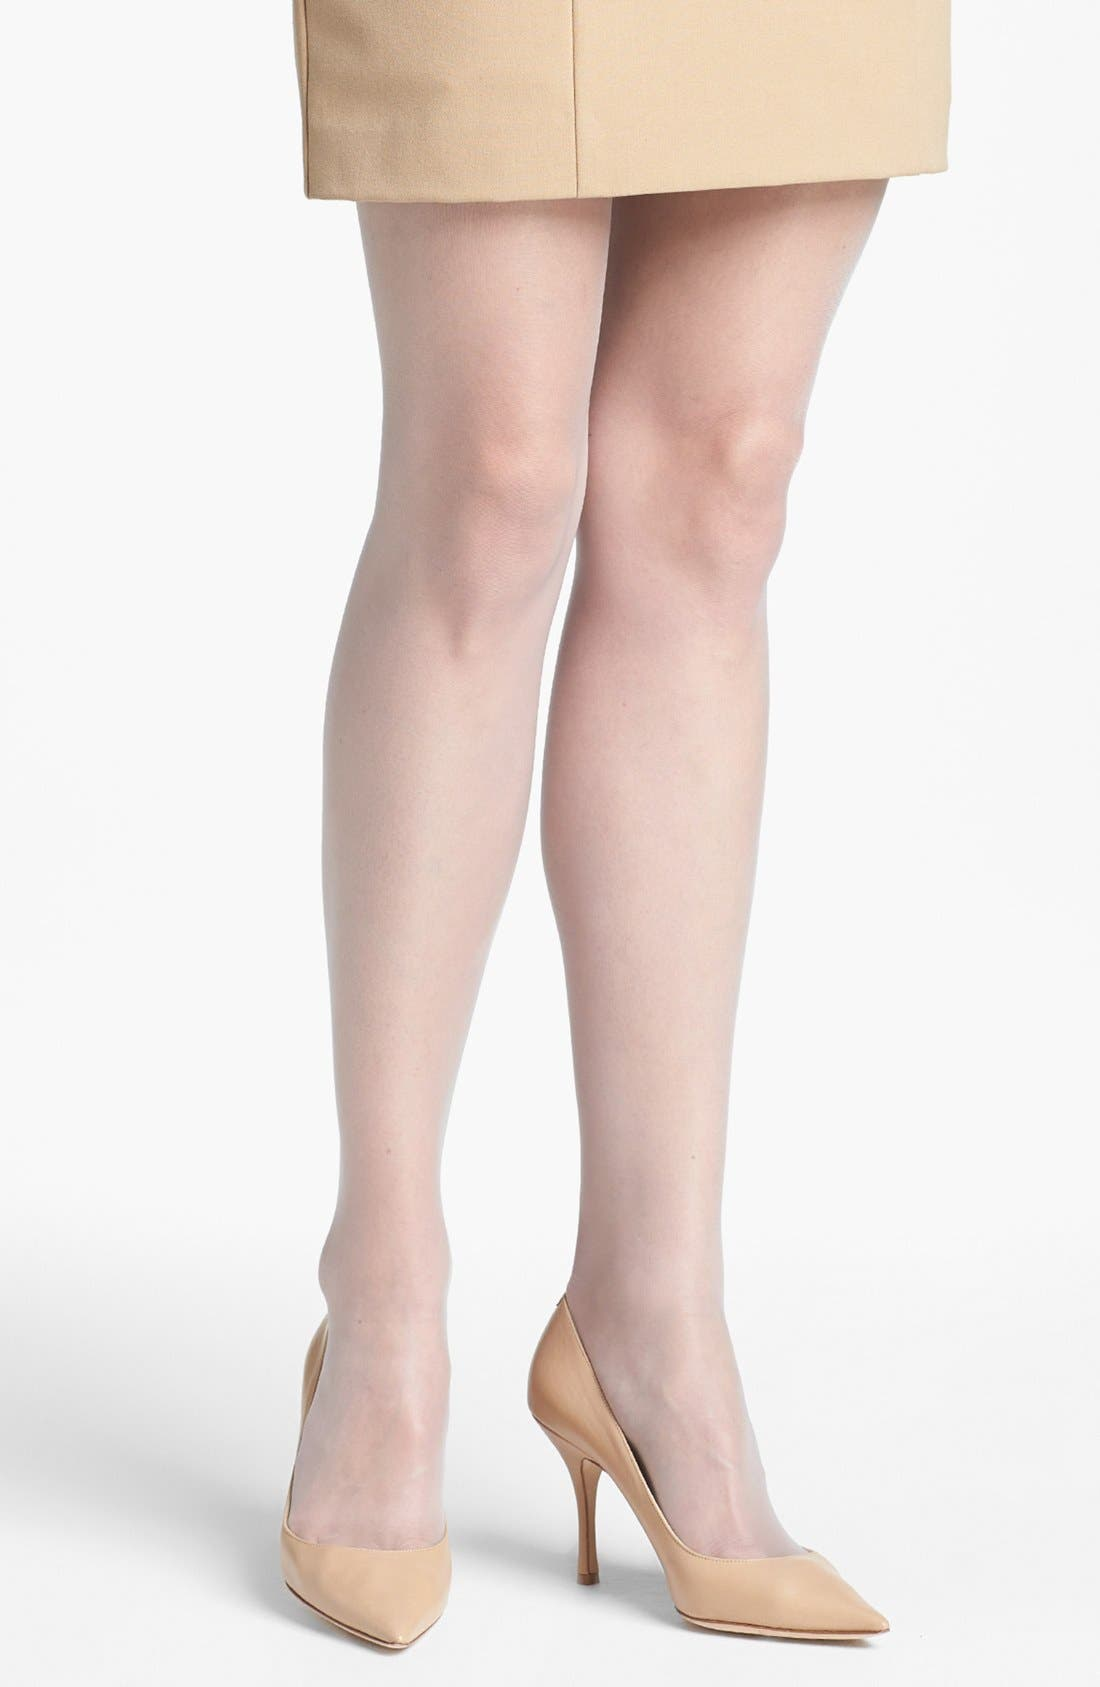 Alternate Image 1 Selected - Nordstrom 'Sheer Gloss' Pantyhose